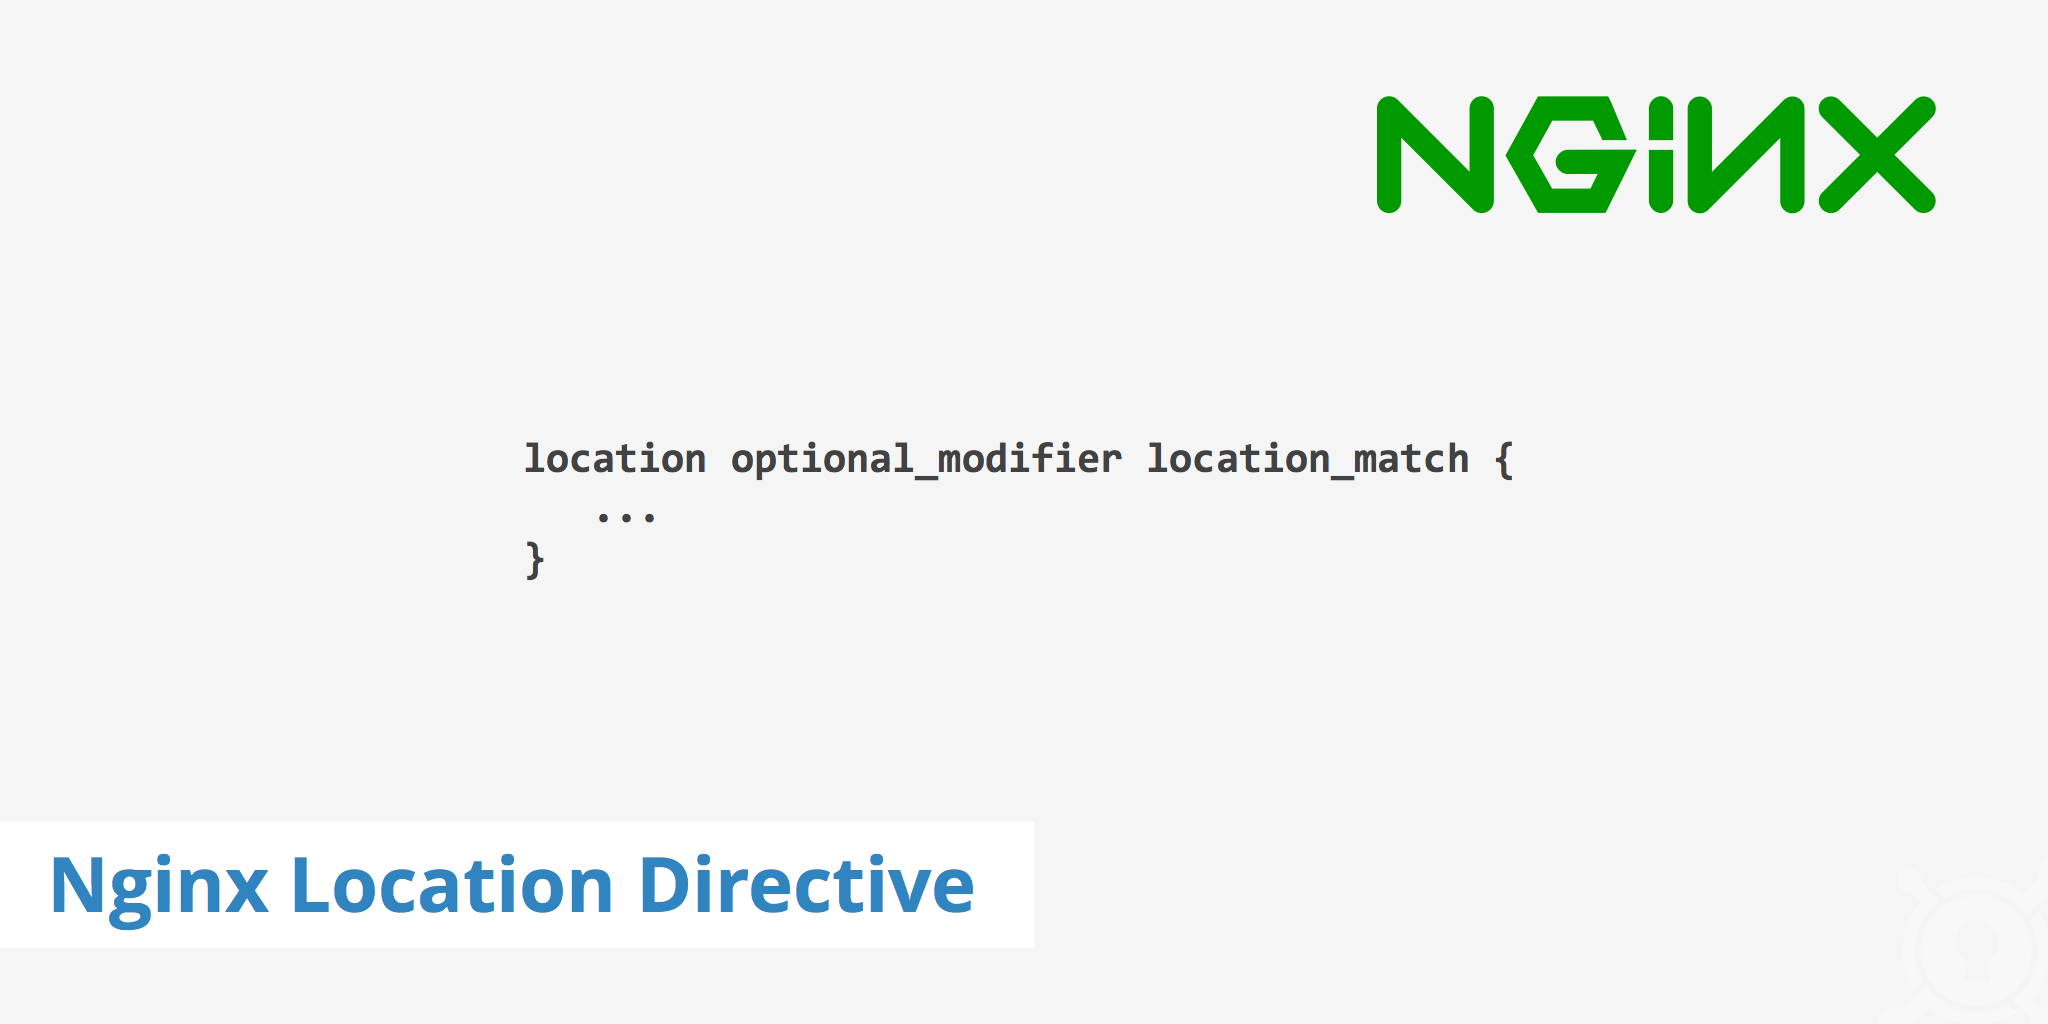 Nginx Location Directive Explained - KeyCDN Support